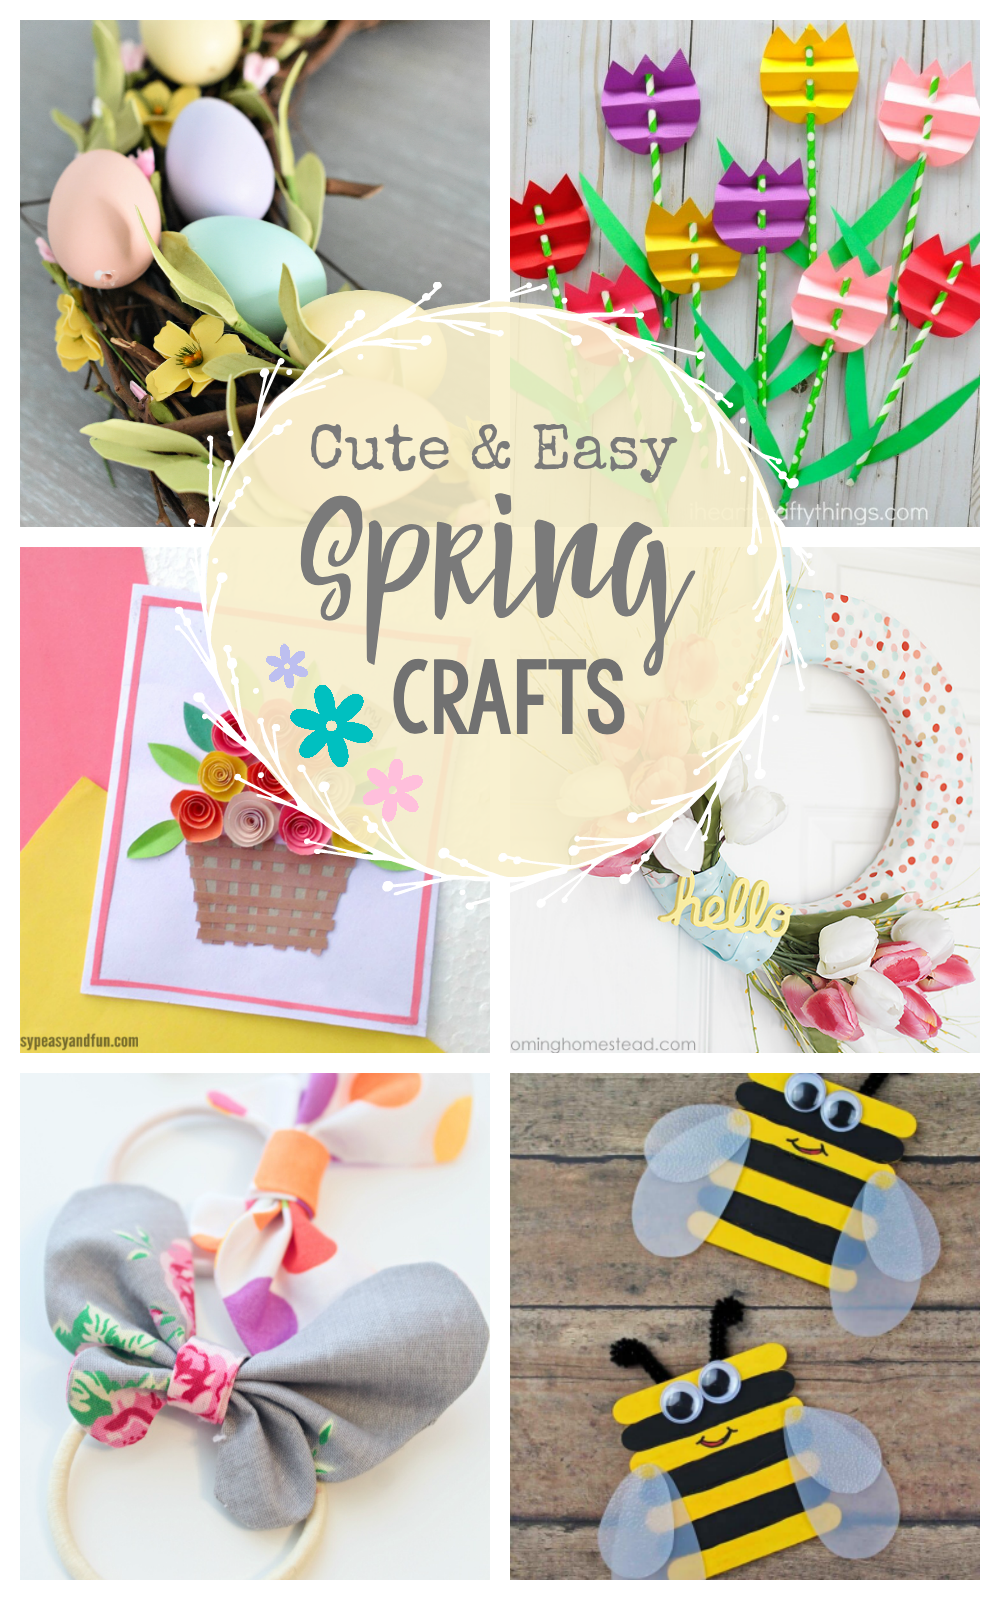 These cute Spring Craft Ideas are great for kids or for you to try this year! Flowers and Easter, pastels and other cute, simple Spring crafts! #spring #crafts #craftideas #springcrafts